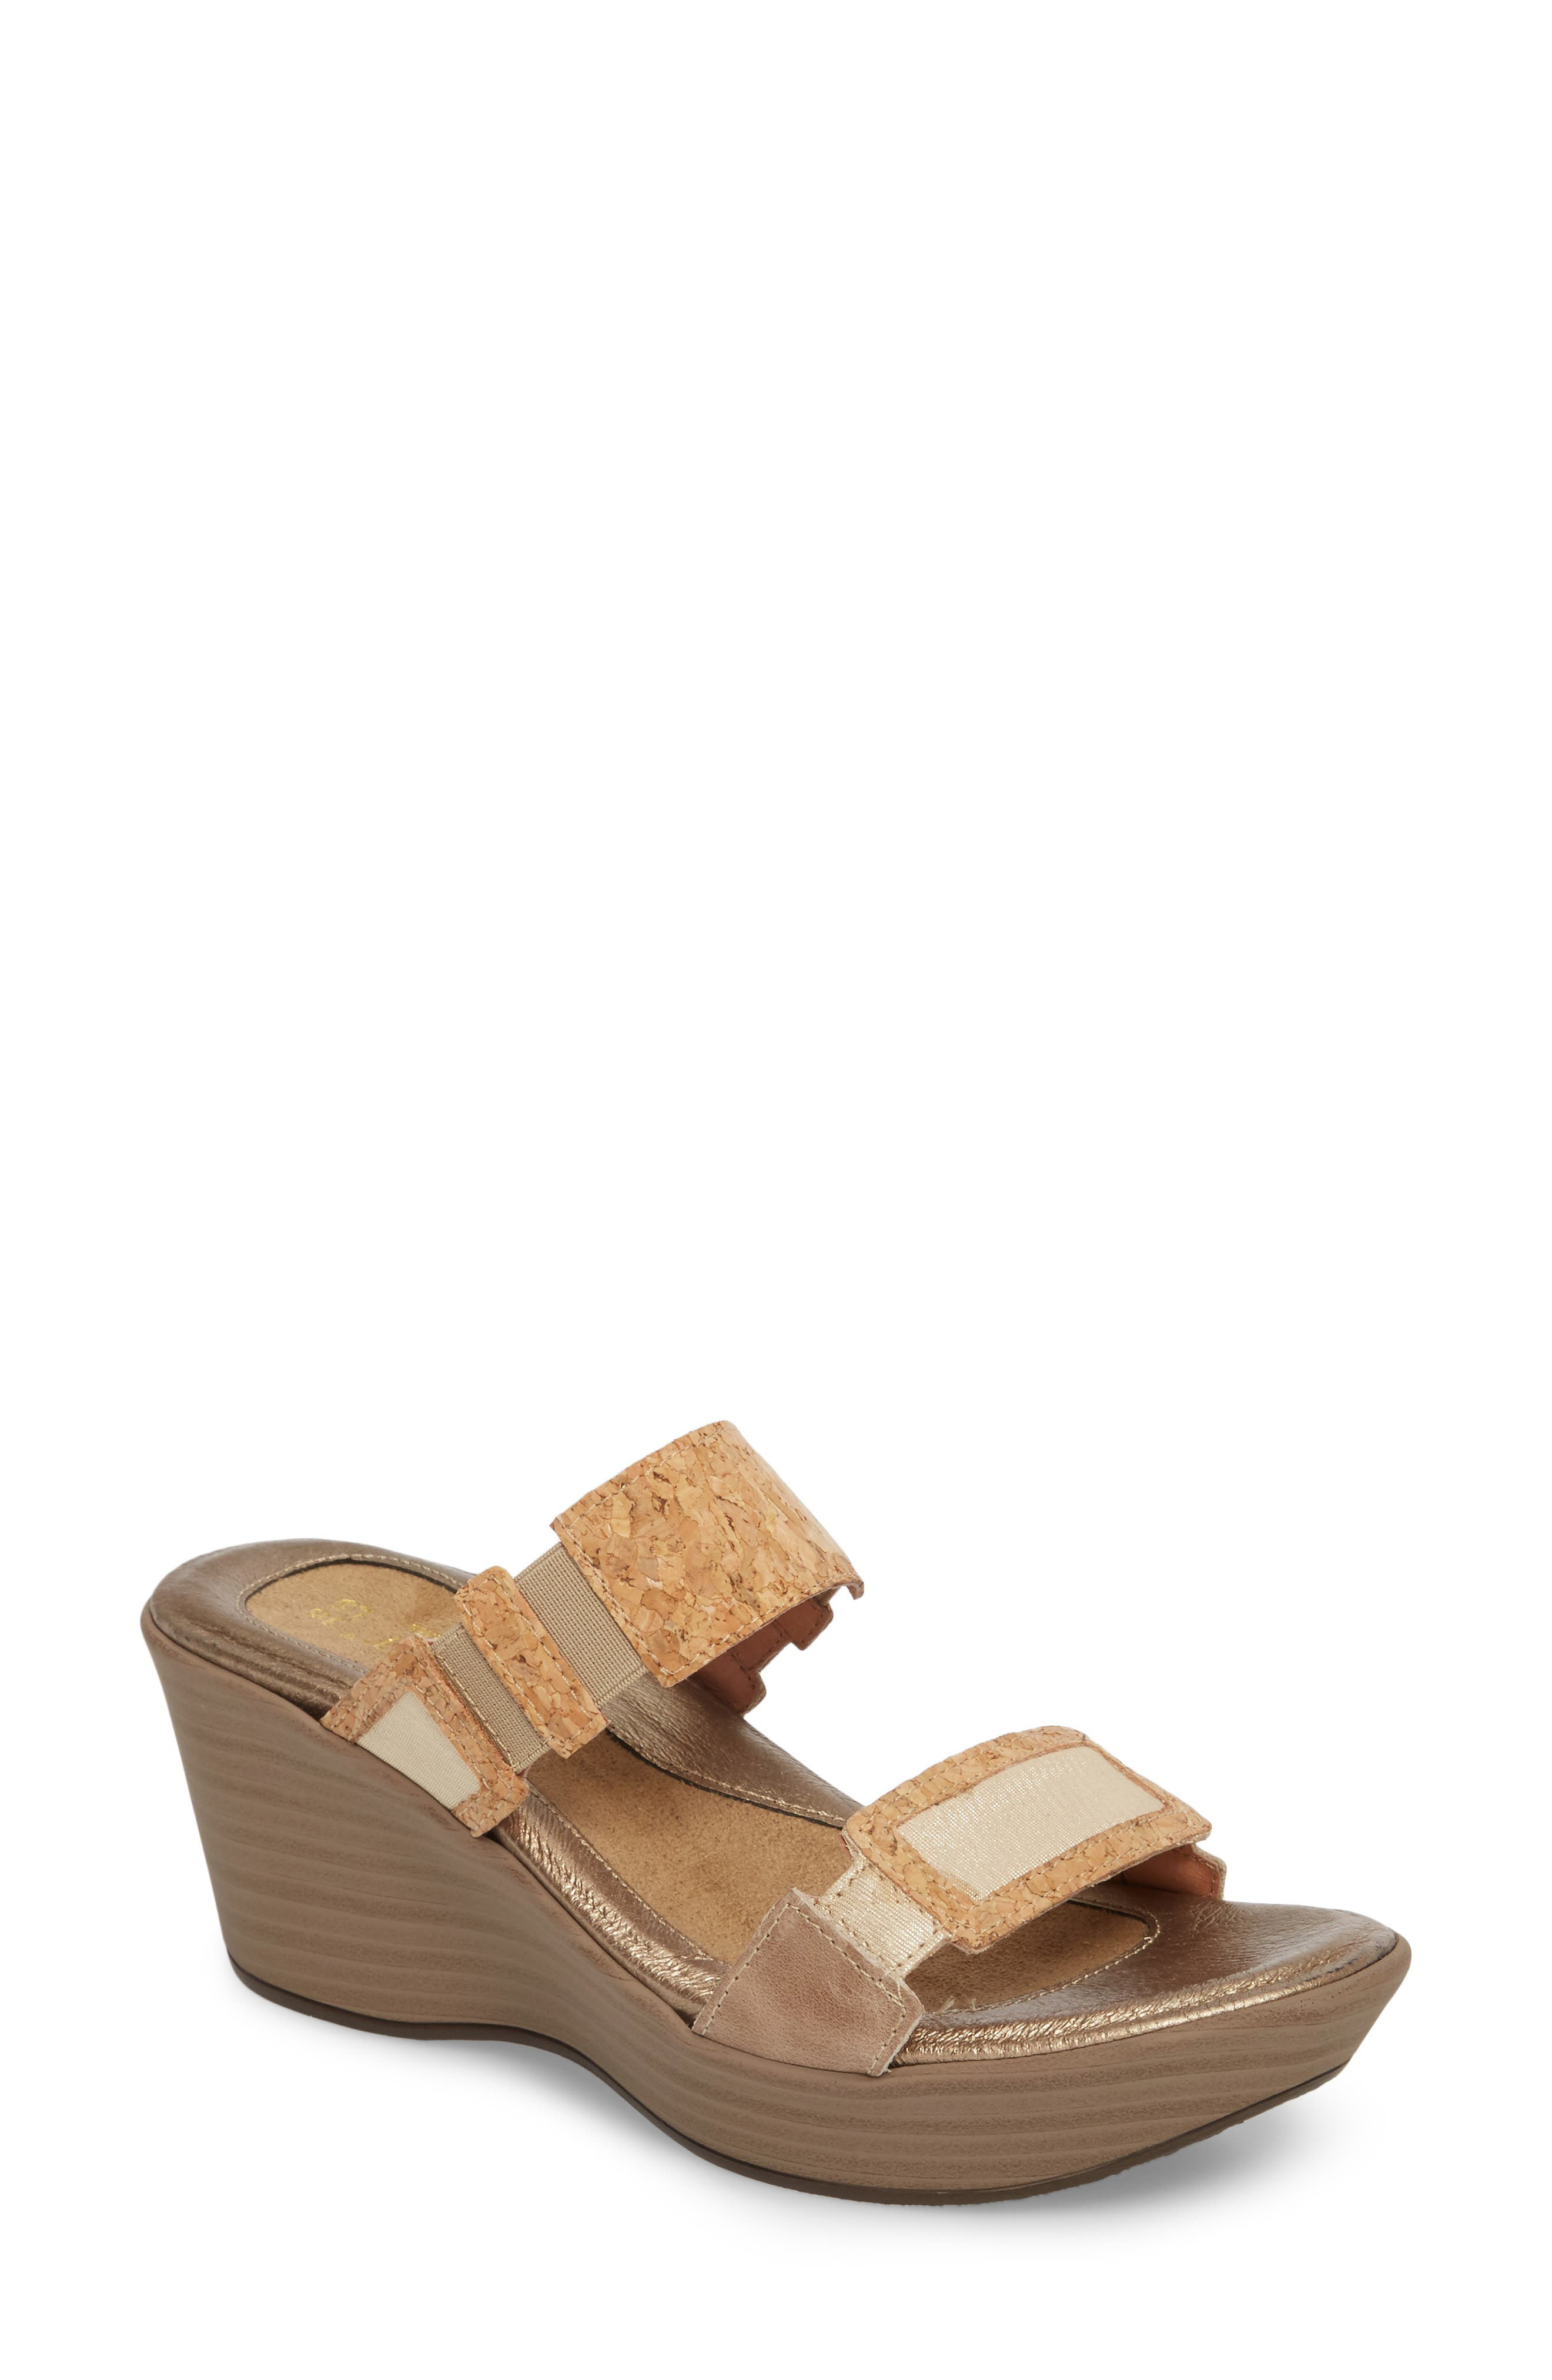 'Treasure' Sandal,                             Main thumbnail 1, color,                             Cork Leather